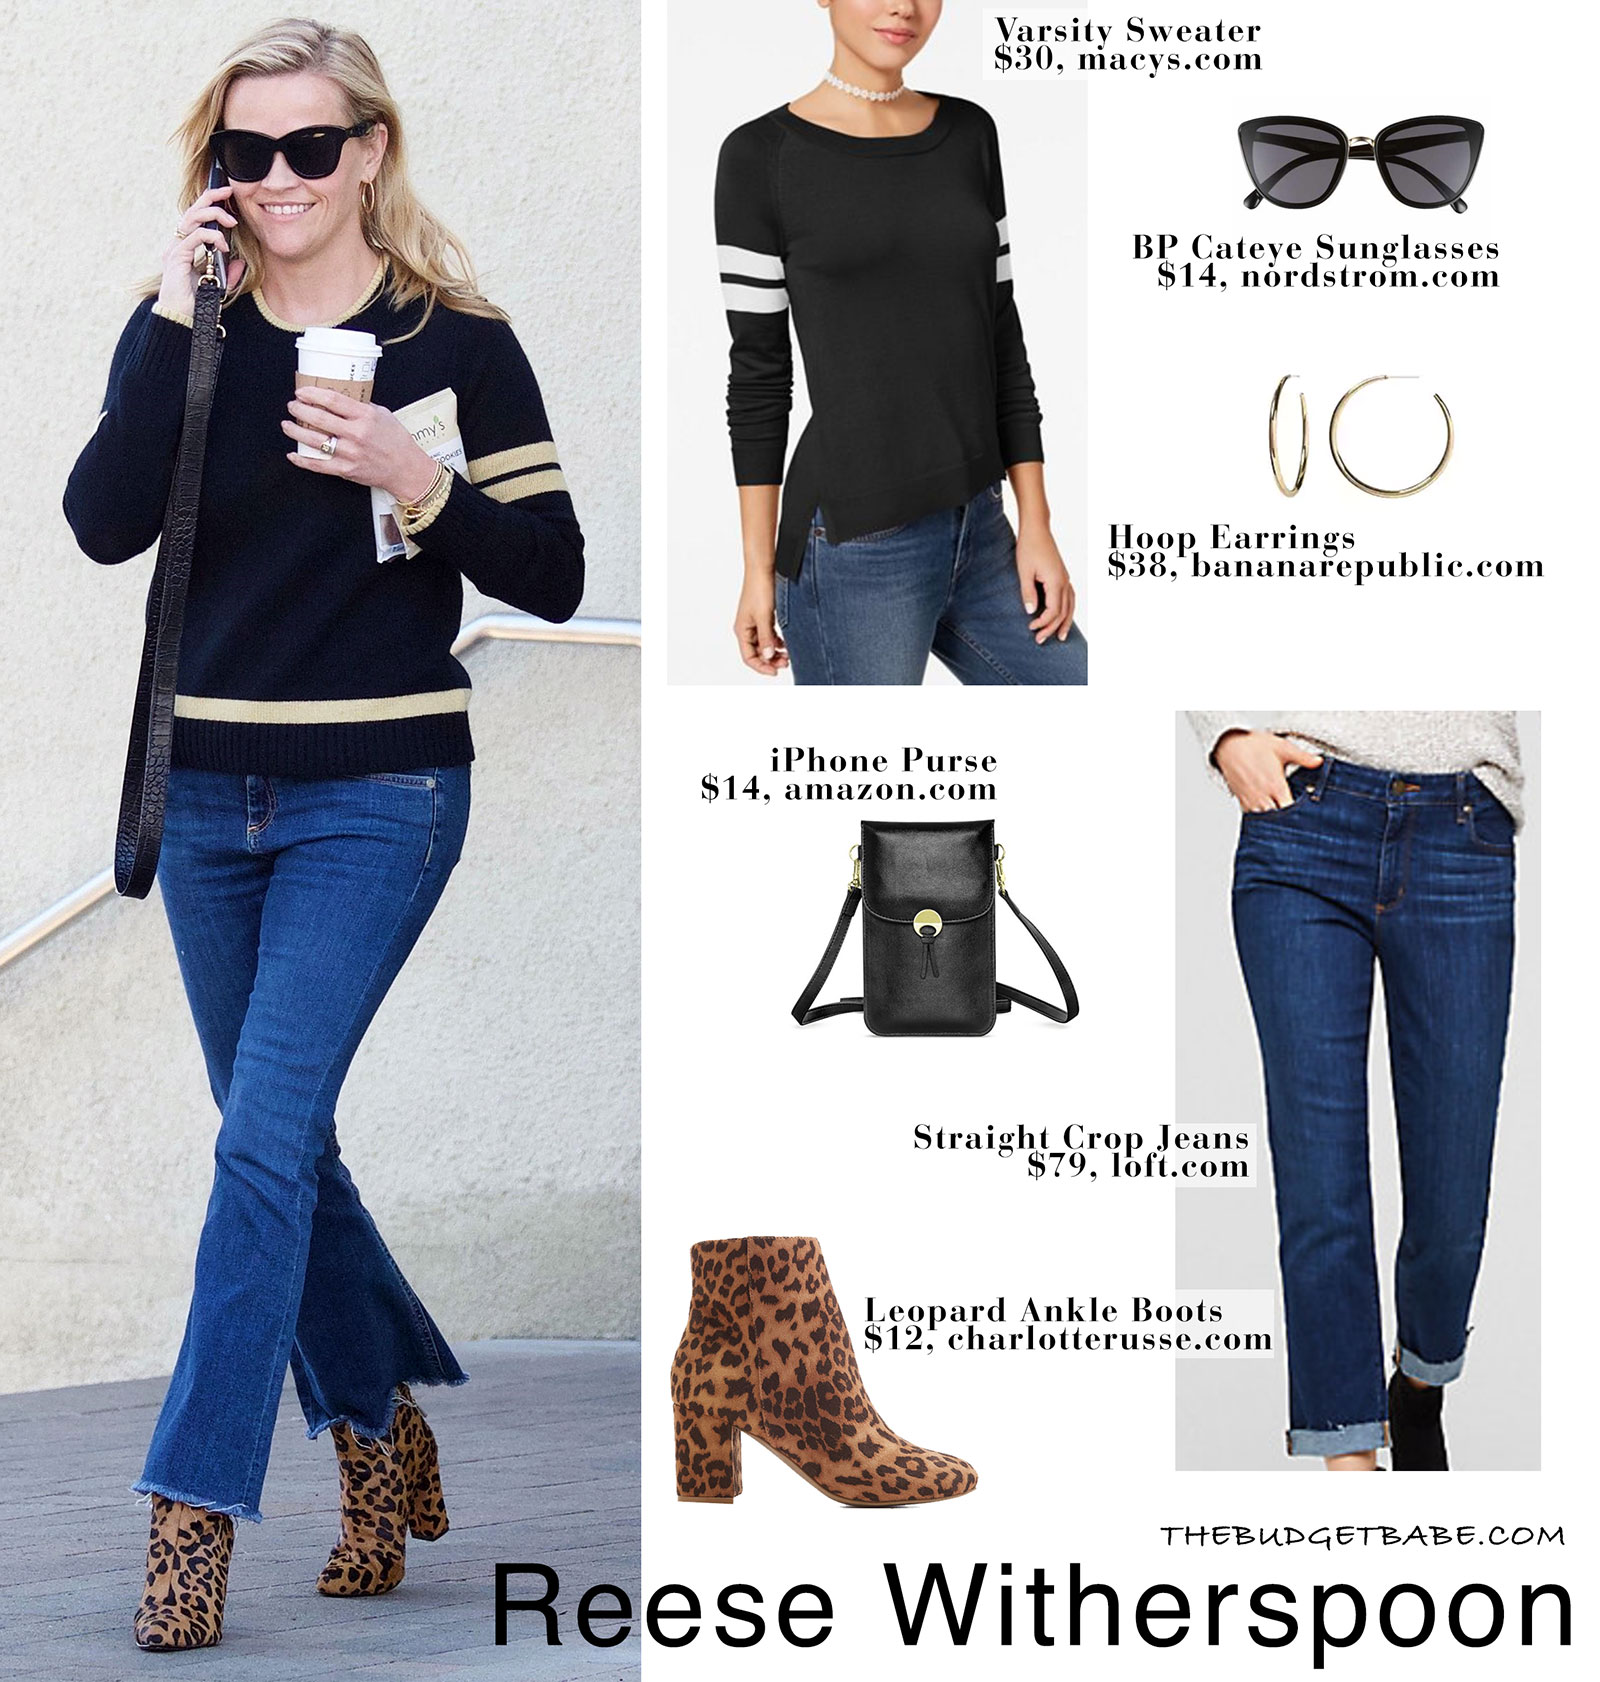 07523f1302 Reese Witherspoon wears her Draper James Spirit sweater with crop jeans and leopard  print ankle booties